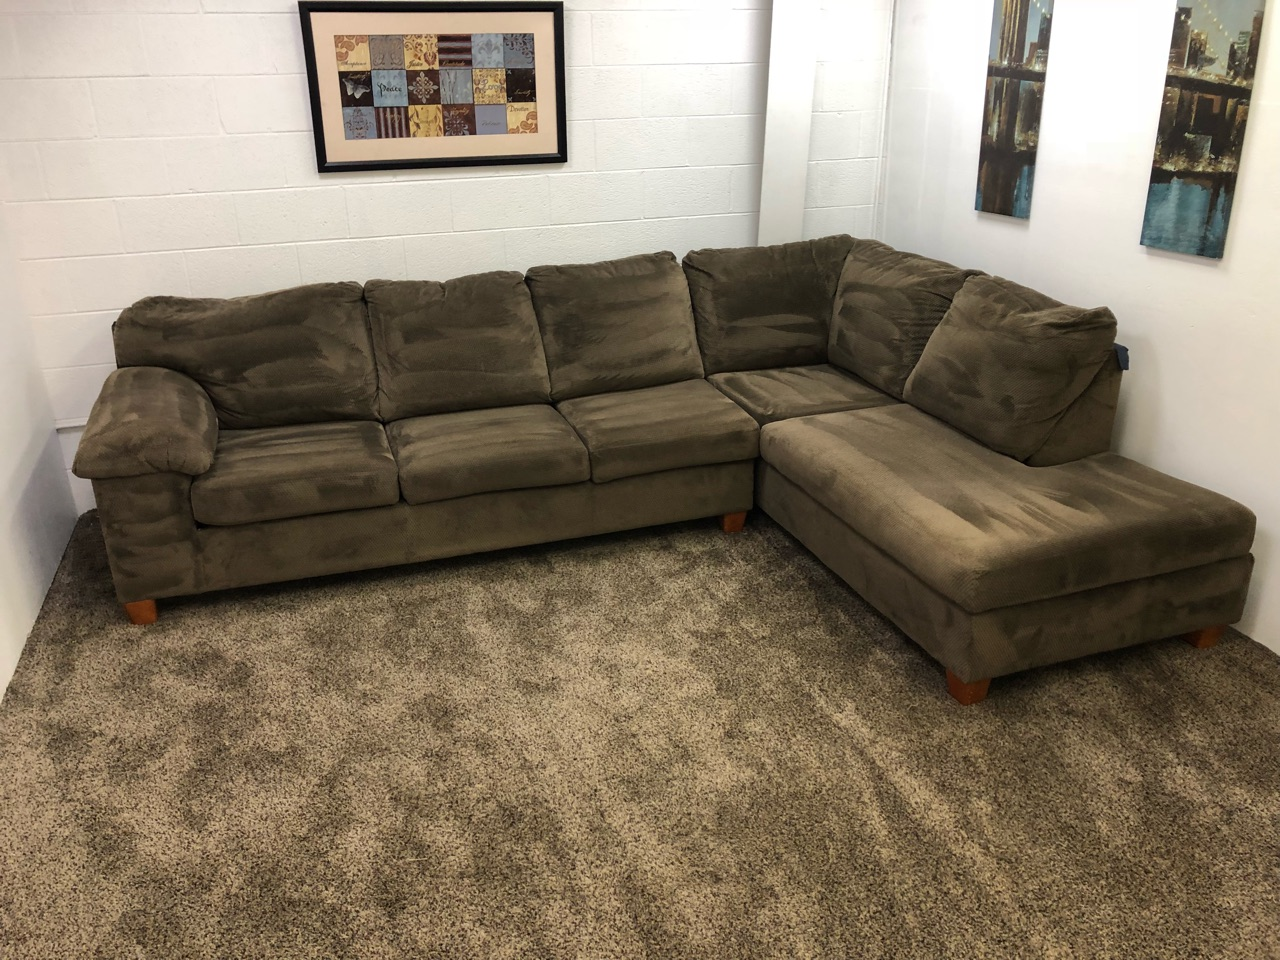 1280 2 Piece Brown Chenille Sectional Set With Chaise Lounge Revitalized Furnishings